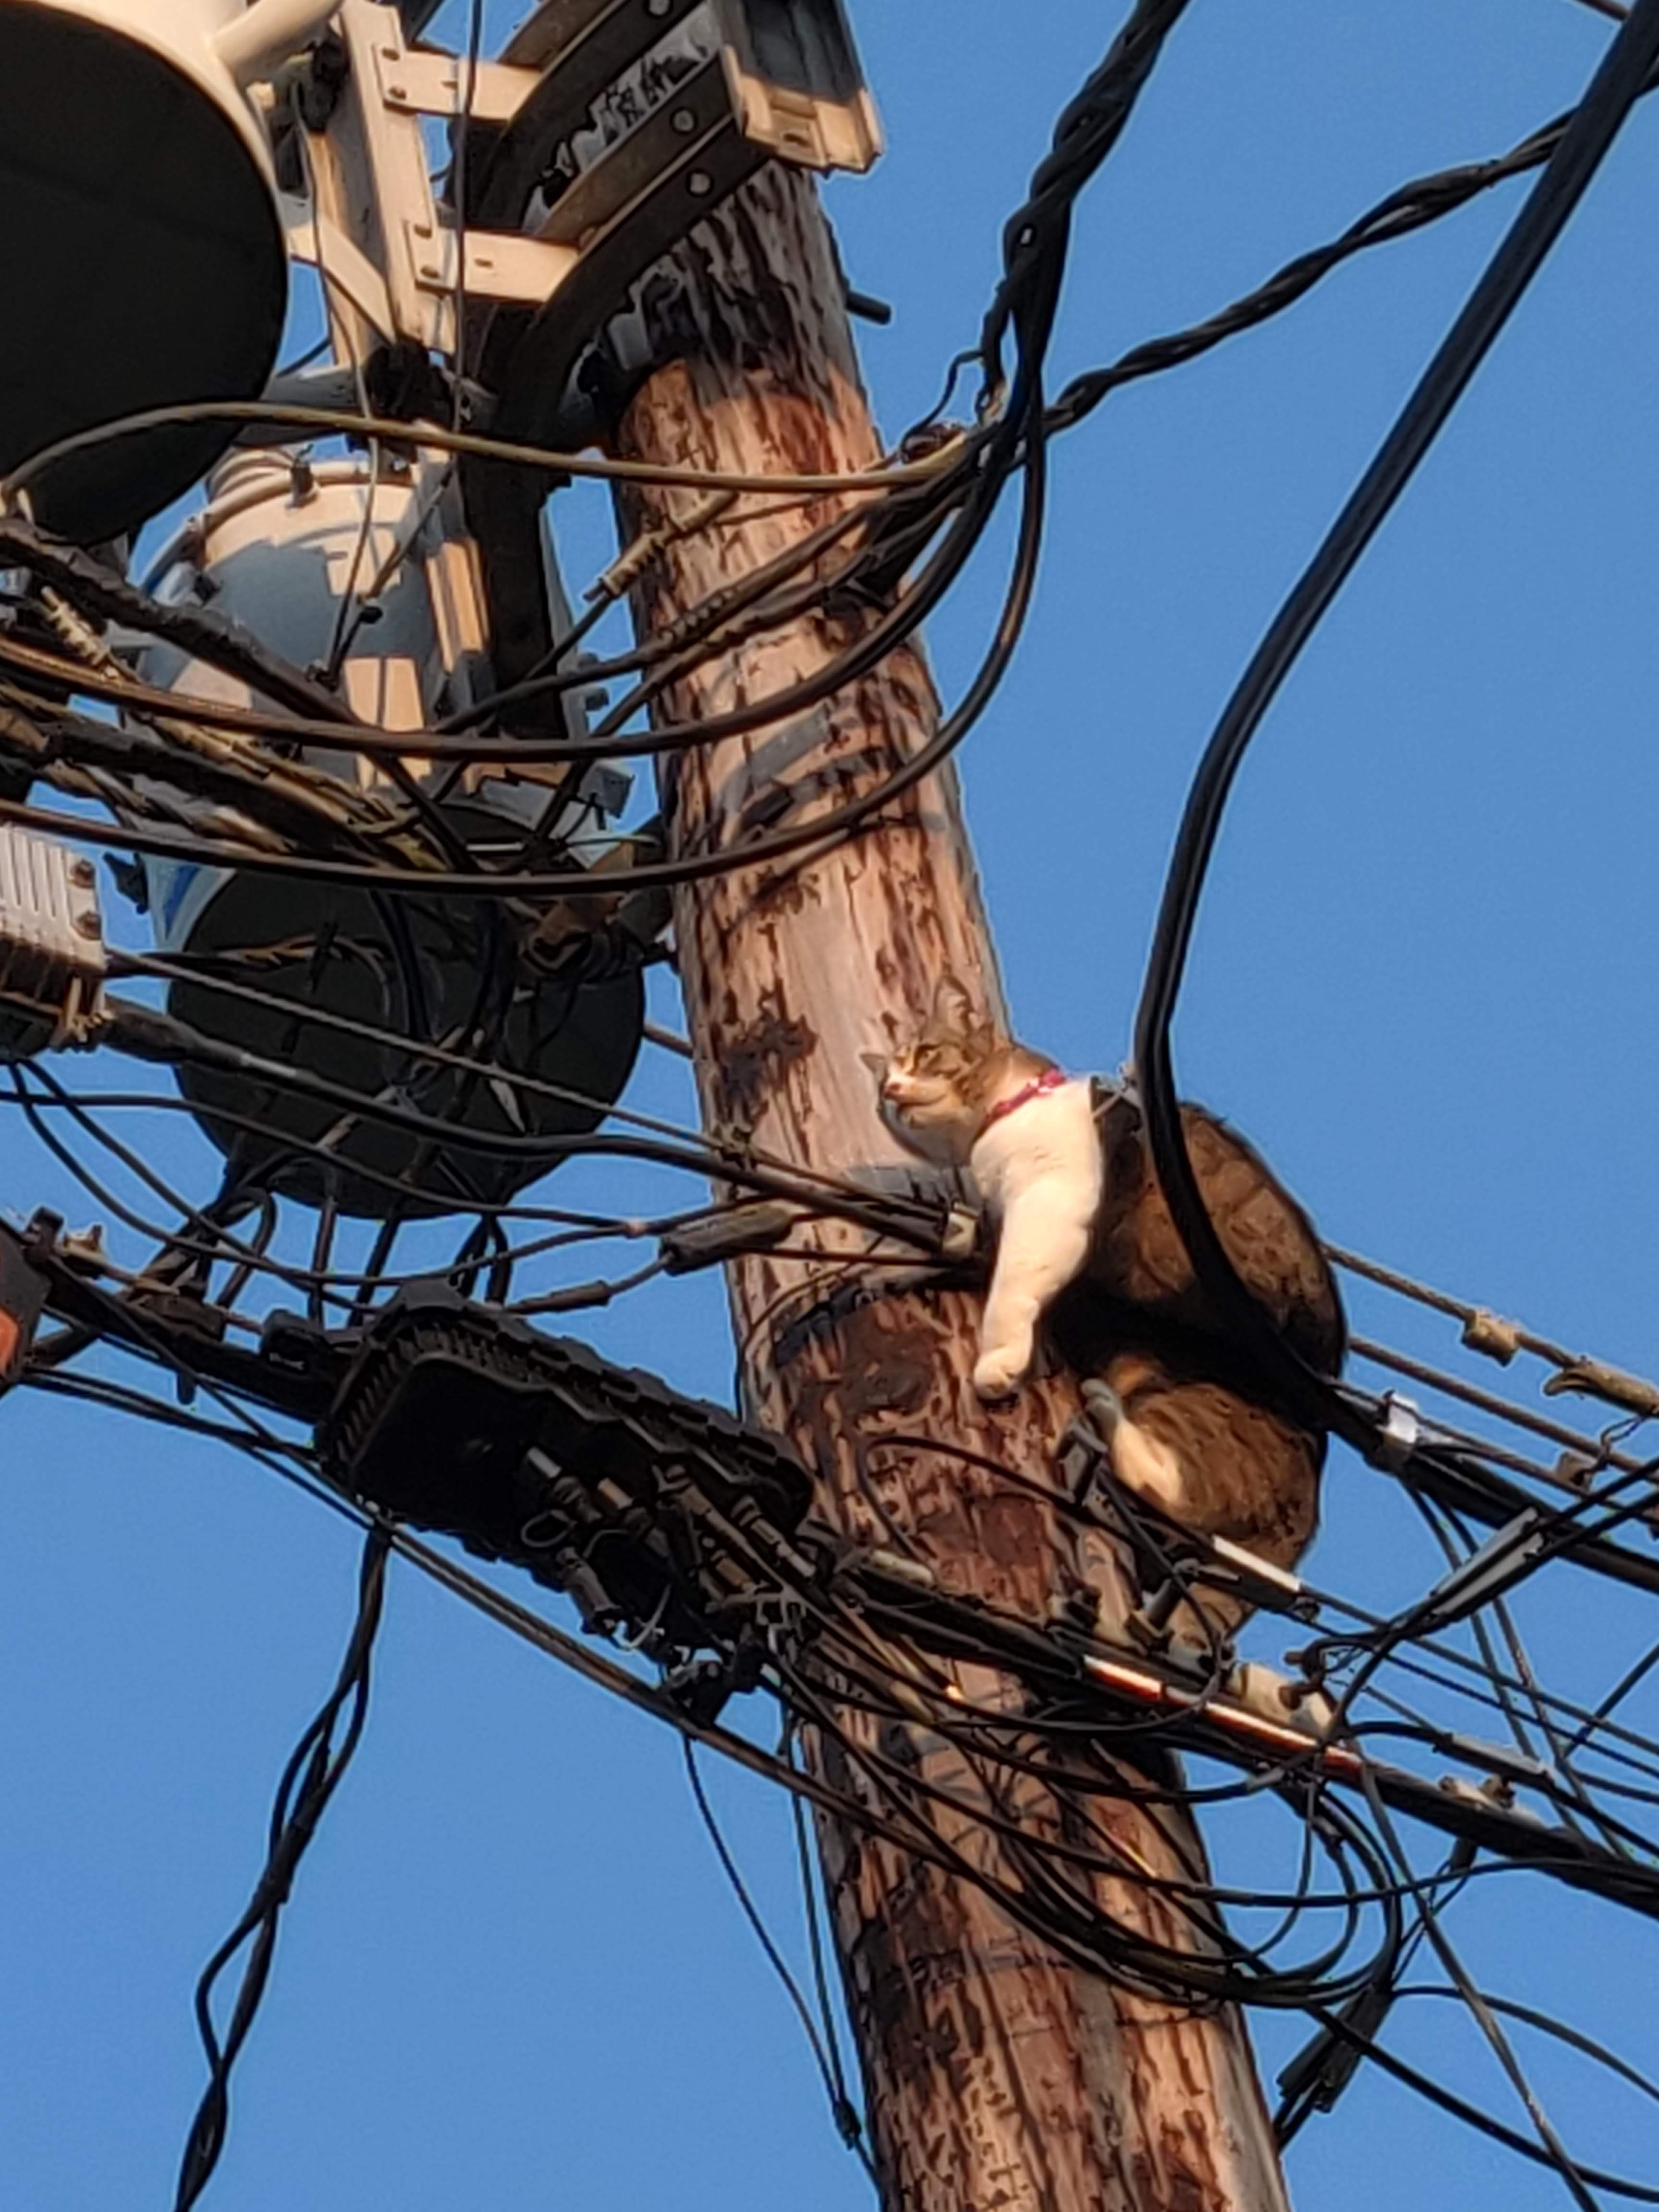 cat stuck on utility wire